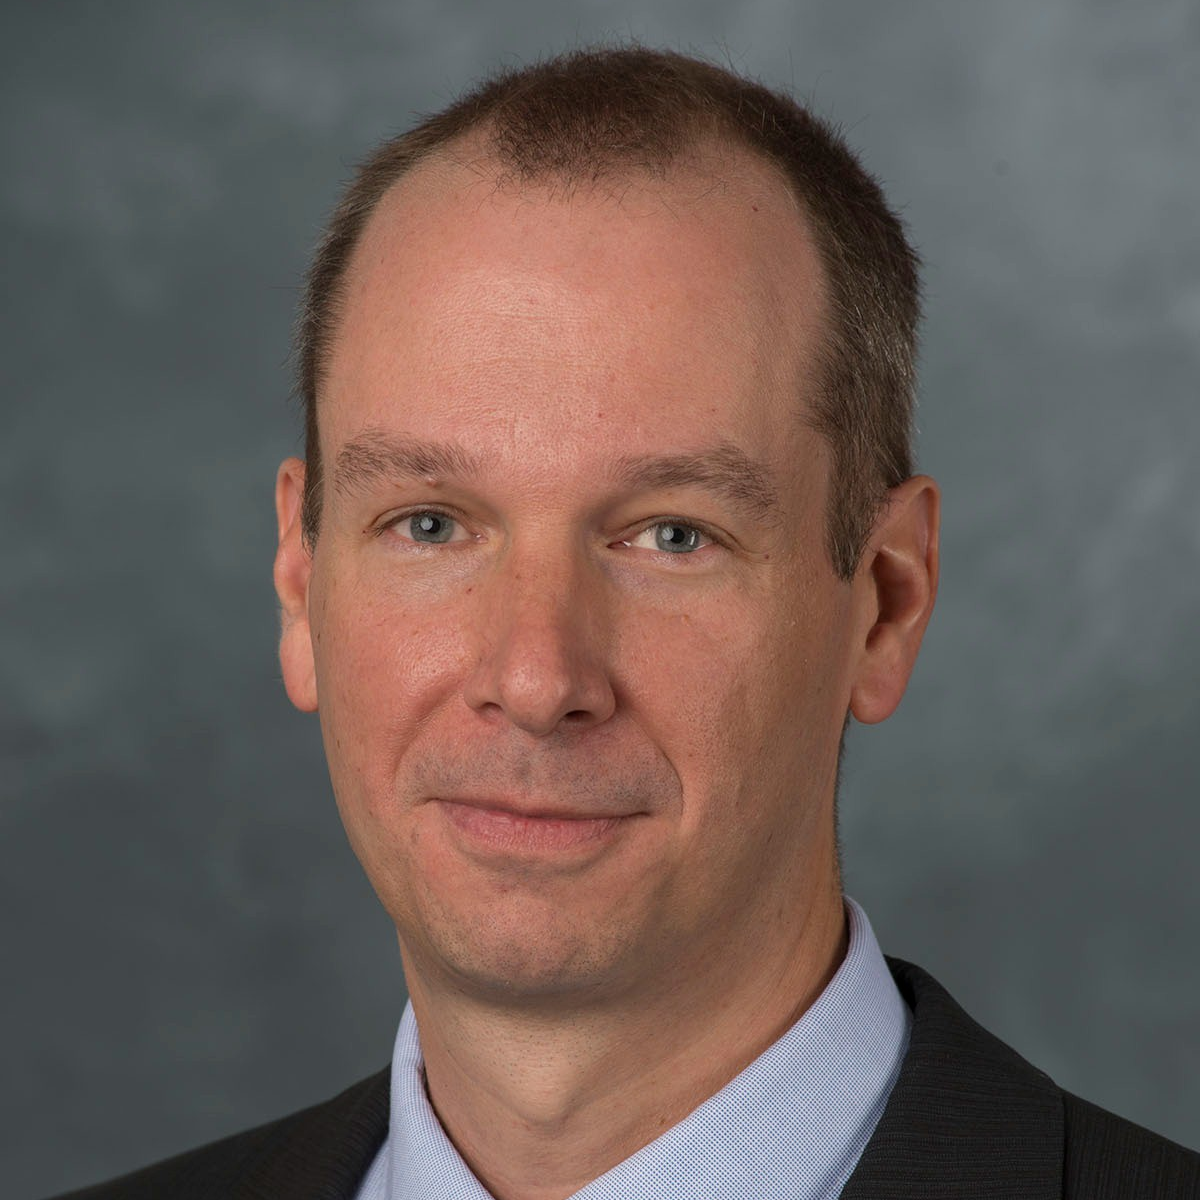 Andre Weimerskirch, Vice President, Cybersecurity and Functional Safety at Lear Corporation